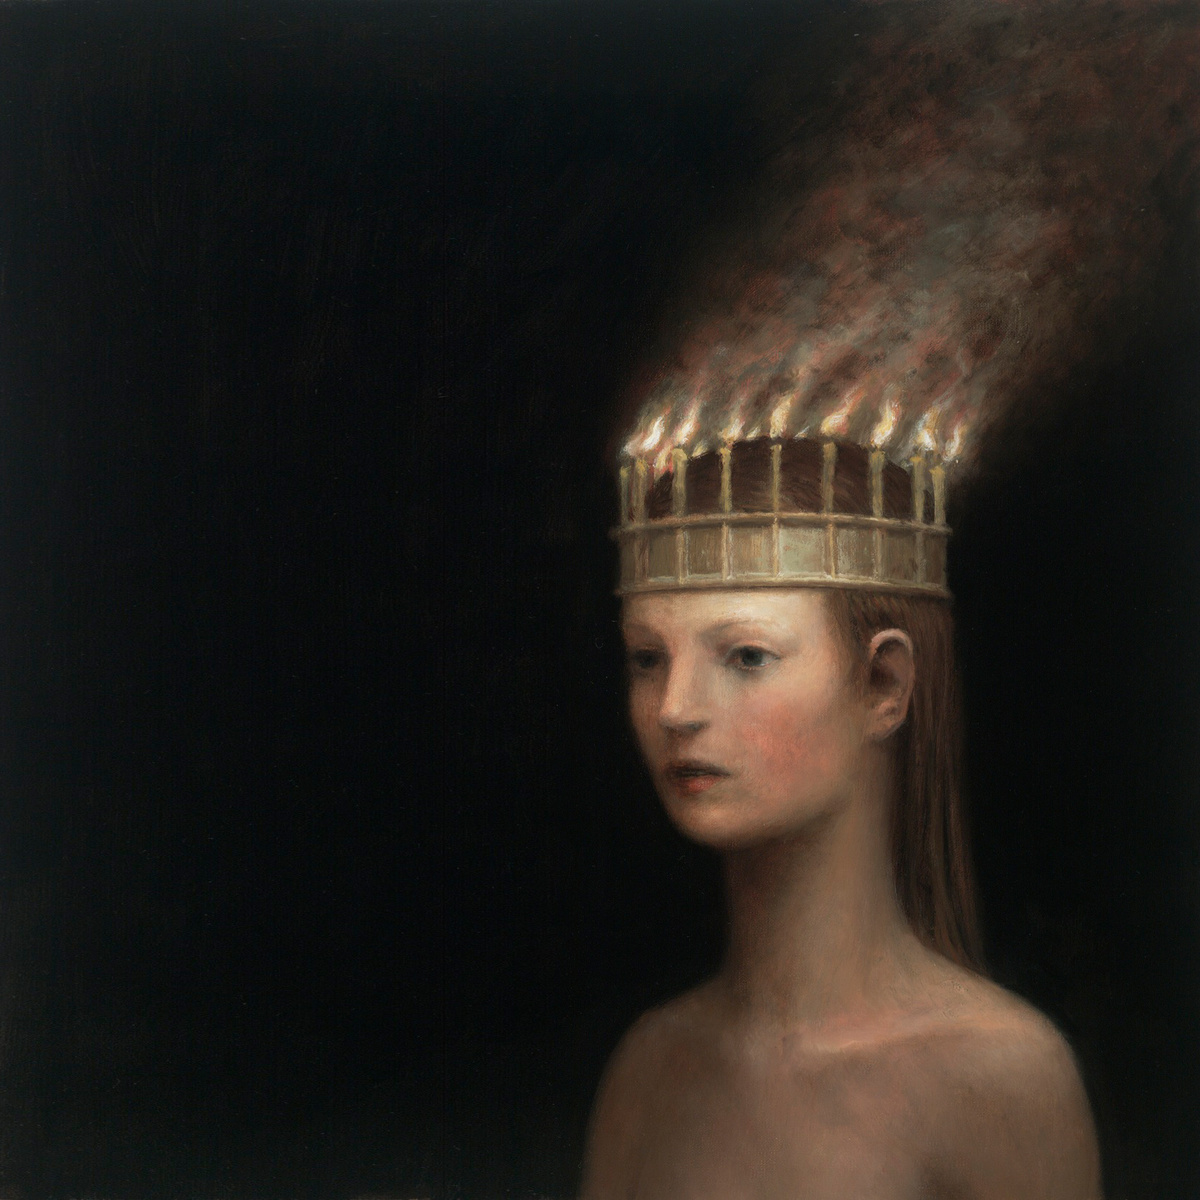 mantar death by burning